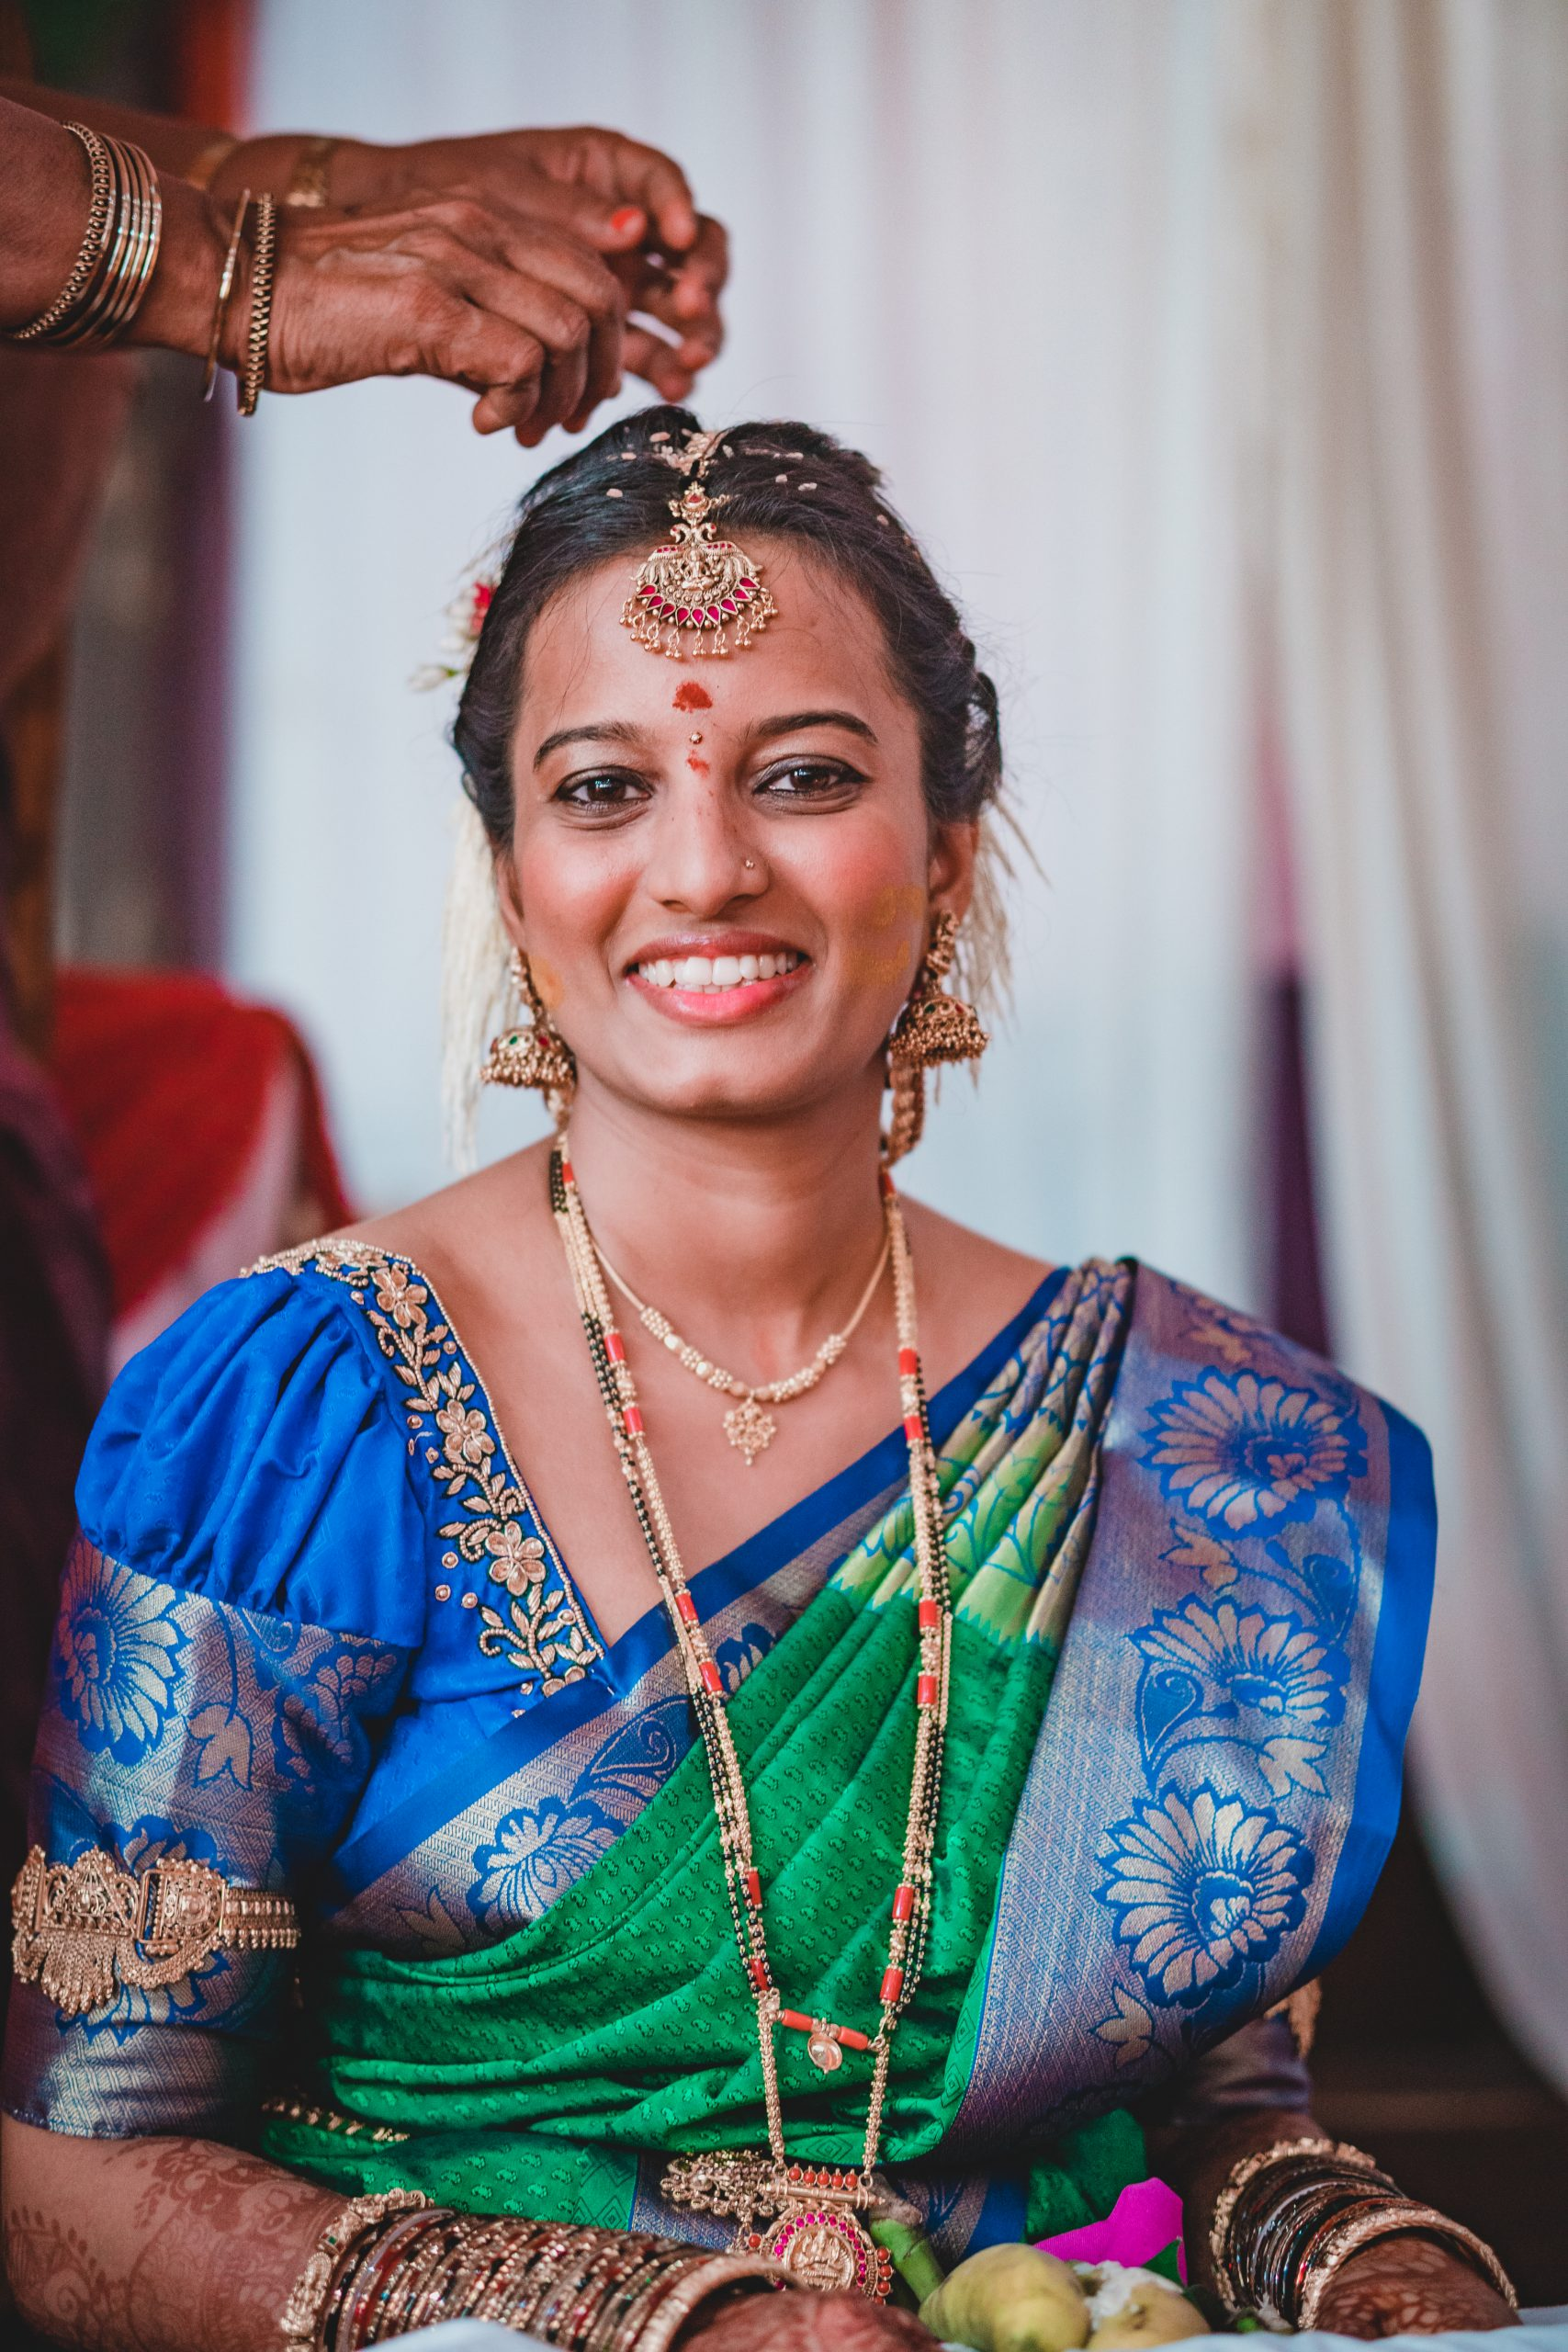 Women smiling on her wedding day